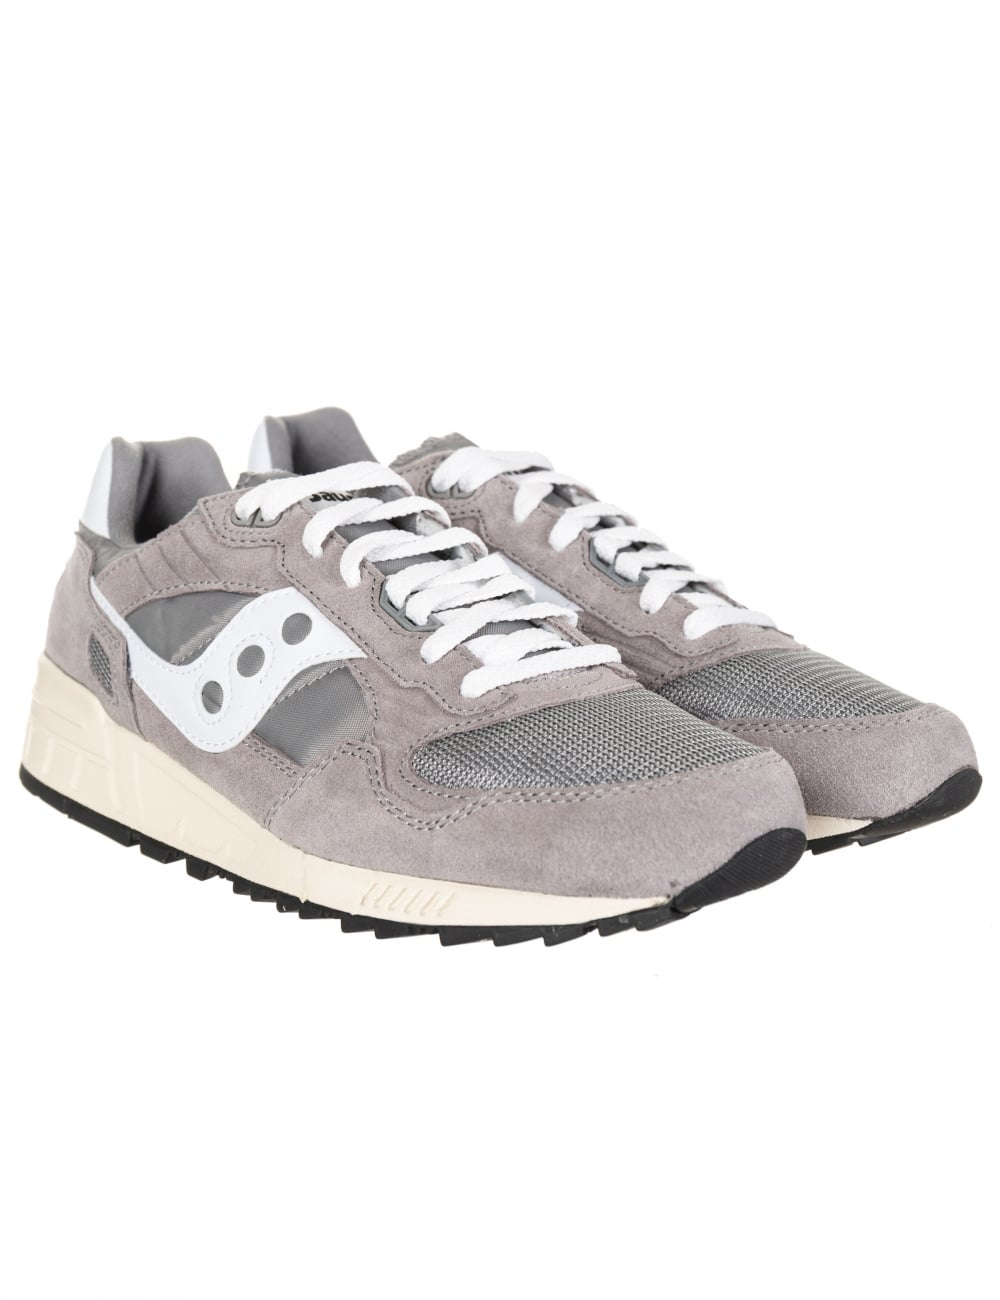 huge selection of 613ca 7dcf9 Shadow 5000 Trainers - Vintage Grey